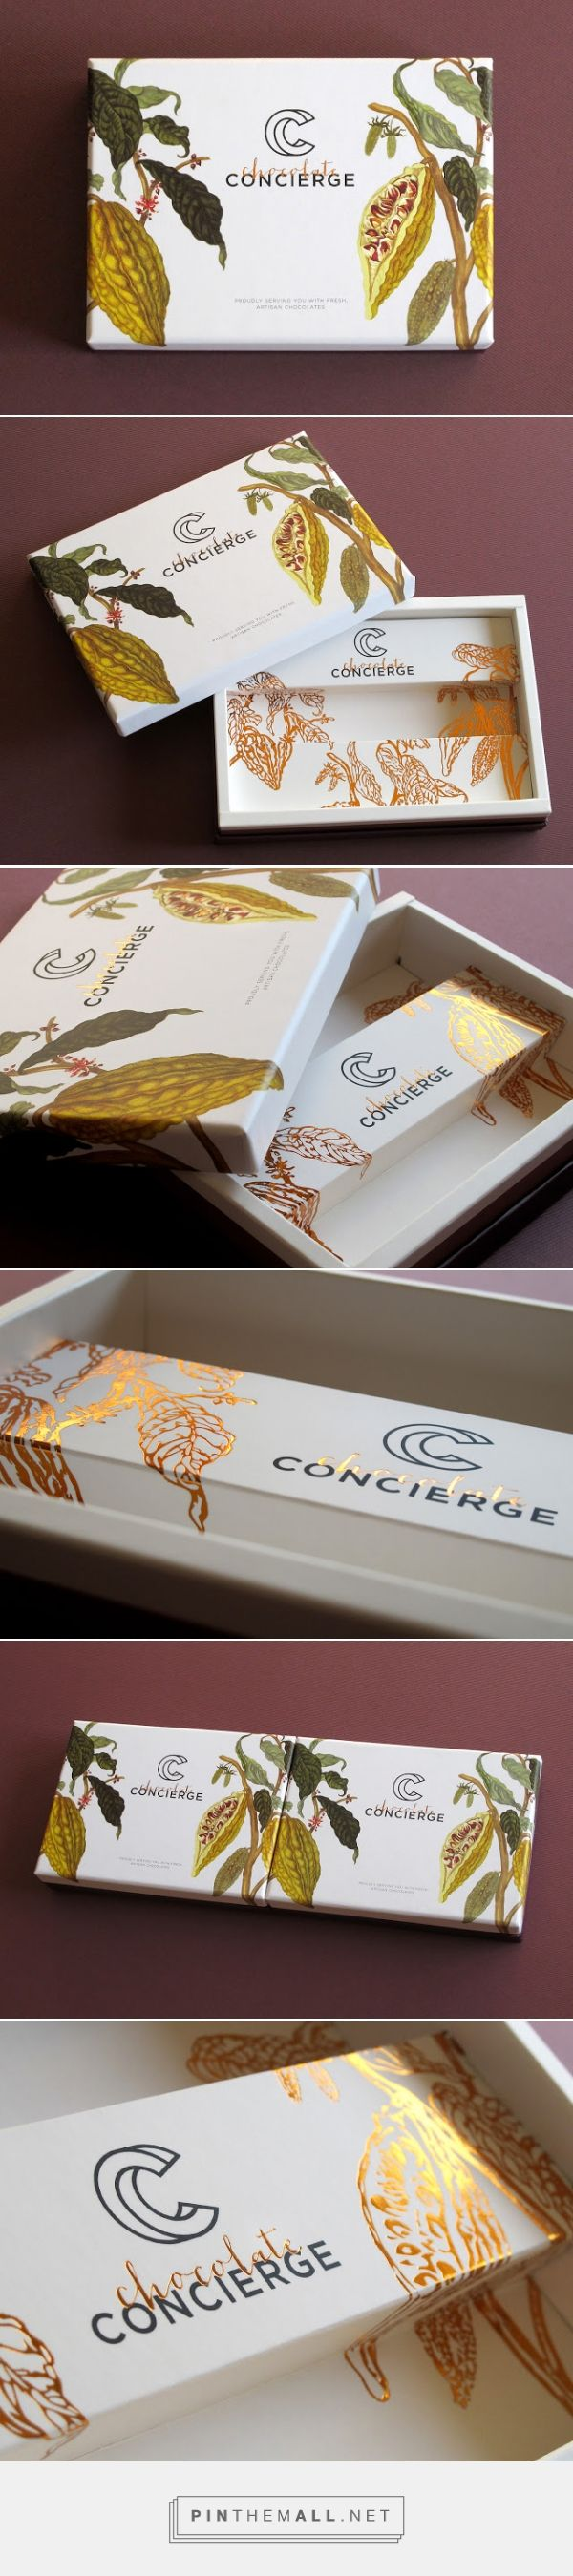 Chocolate Concierge packaging designed by anagraphic​ - http://www.packagingoftheworld.com/2015/09/chocolate-concierge.html